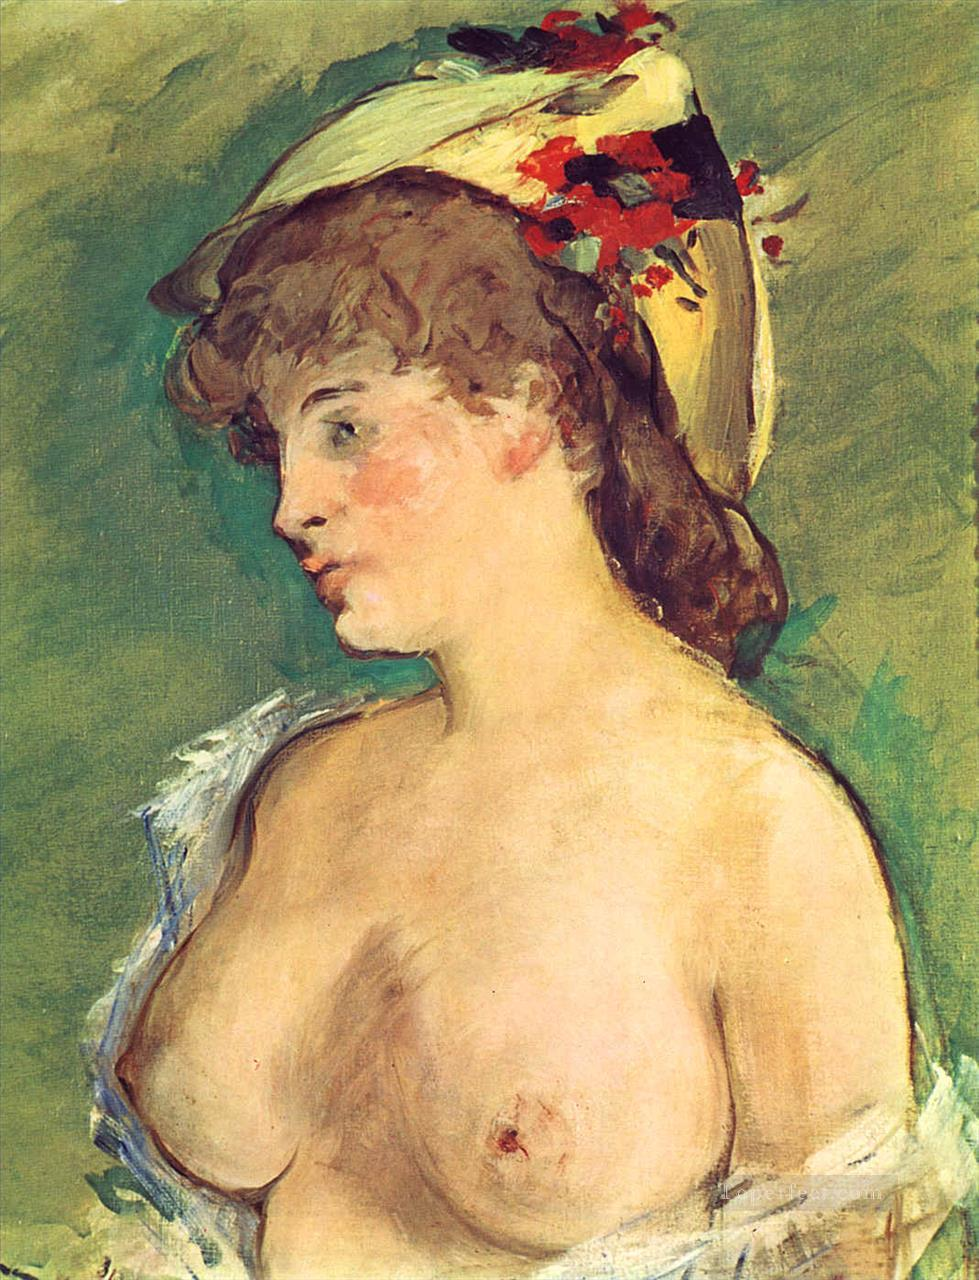 4 Blond Woman with Bare Breasts nude Impressionism Edouard Manet